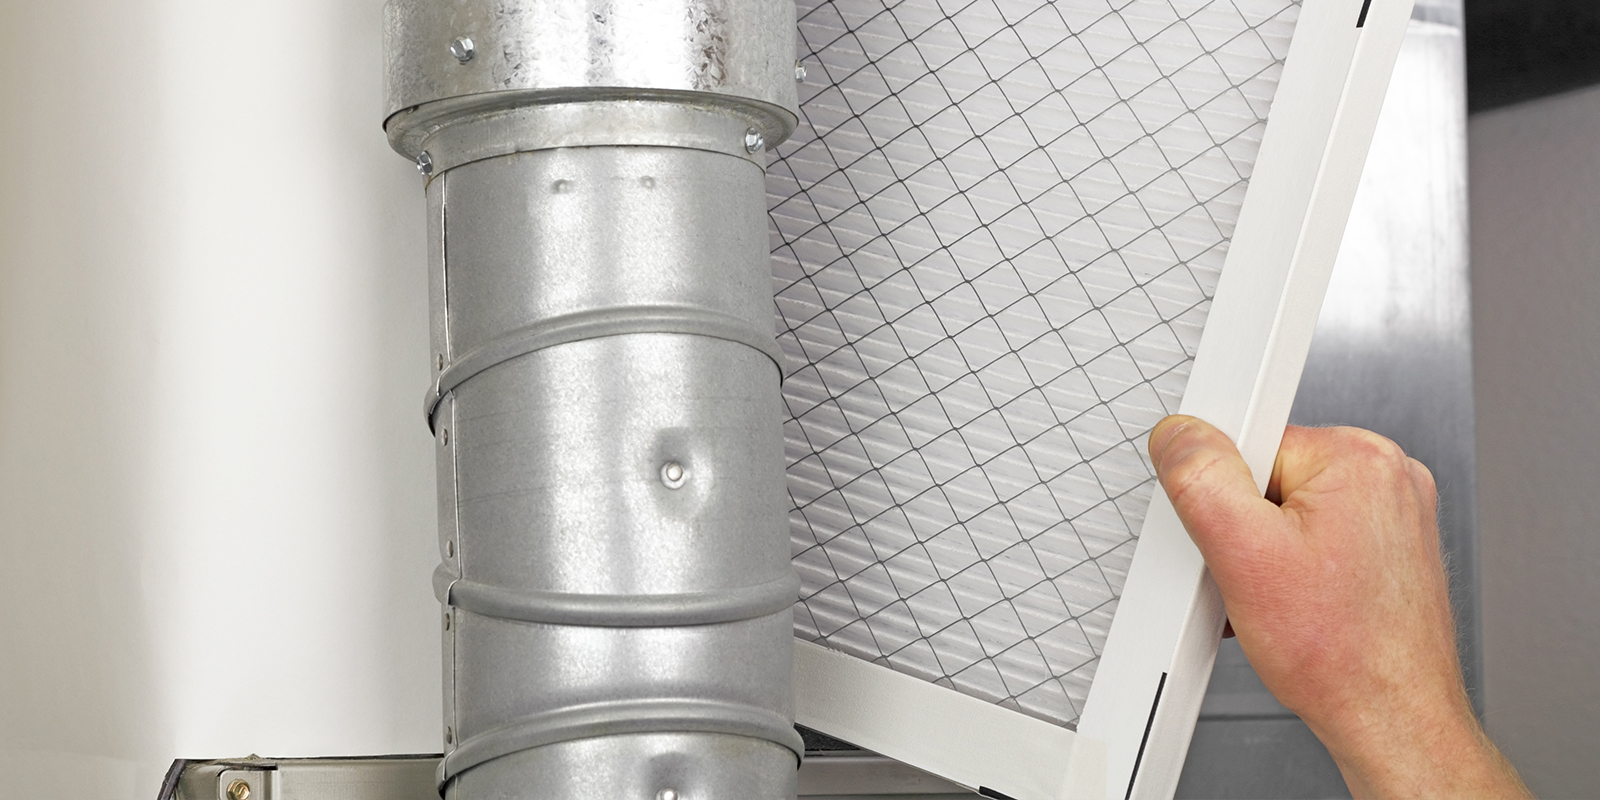 electrostatic air filter article - replacing furnace filter